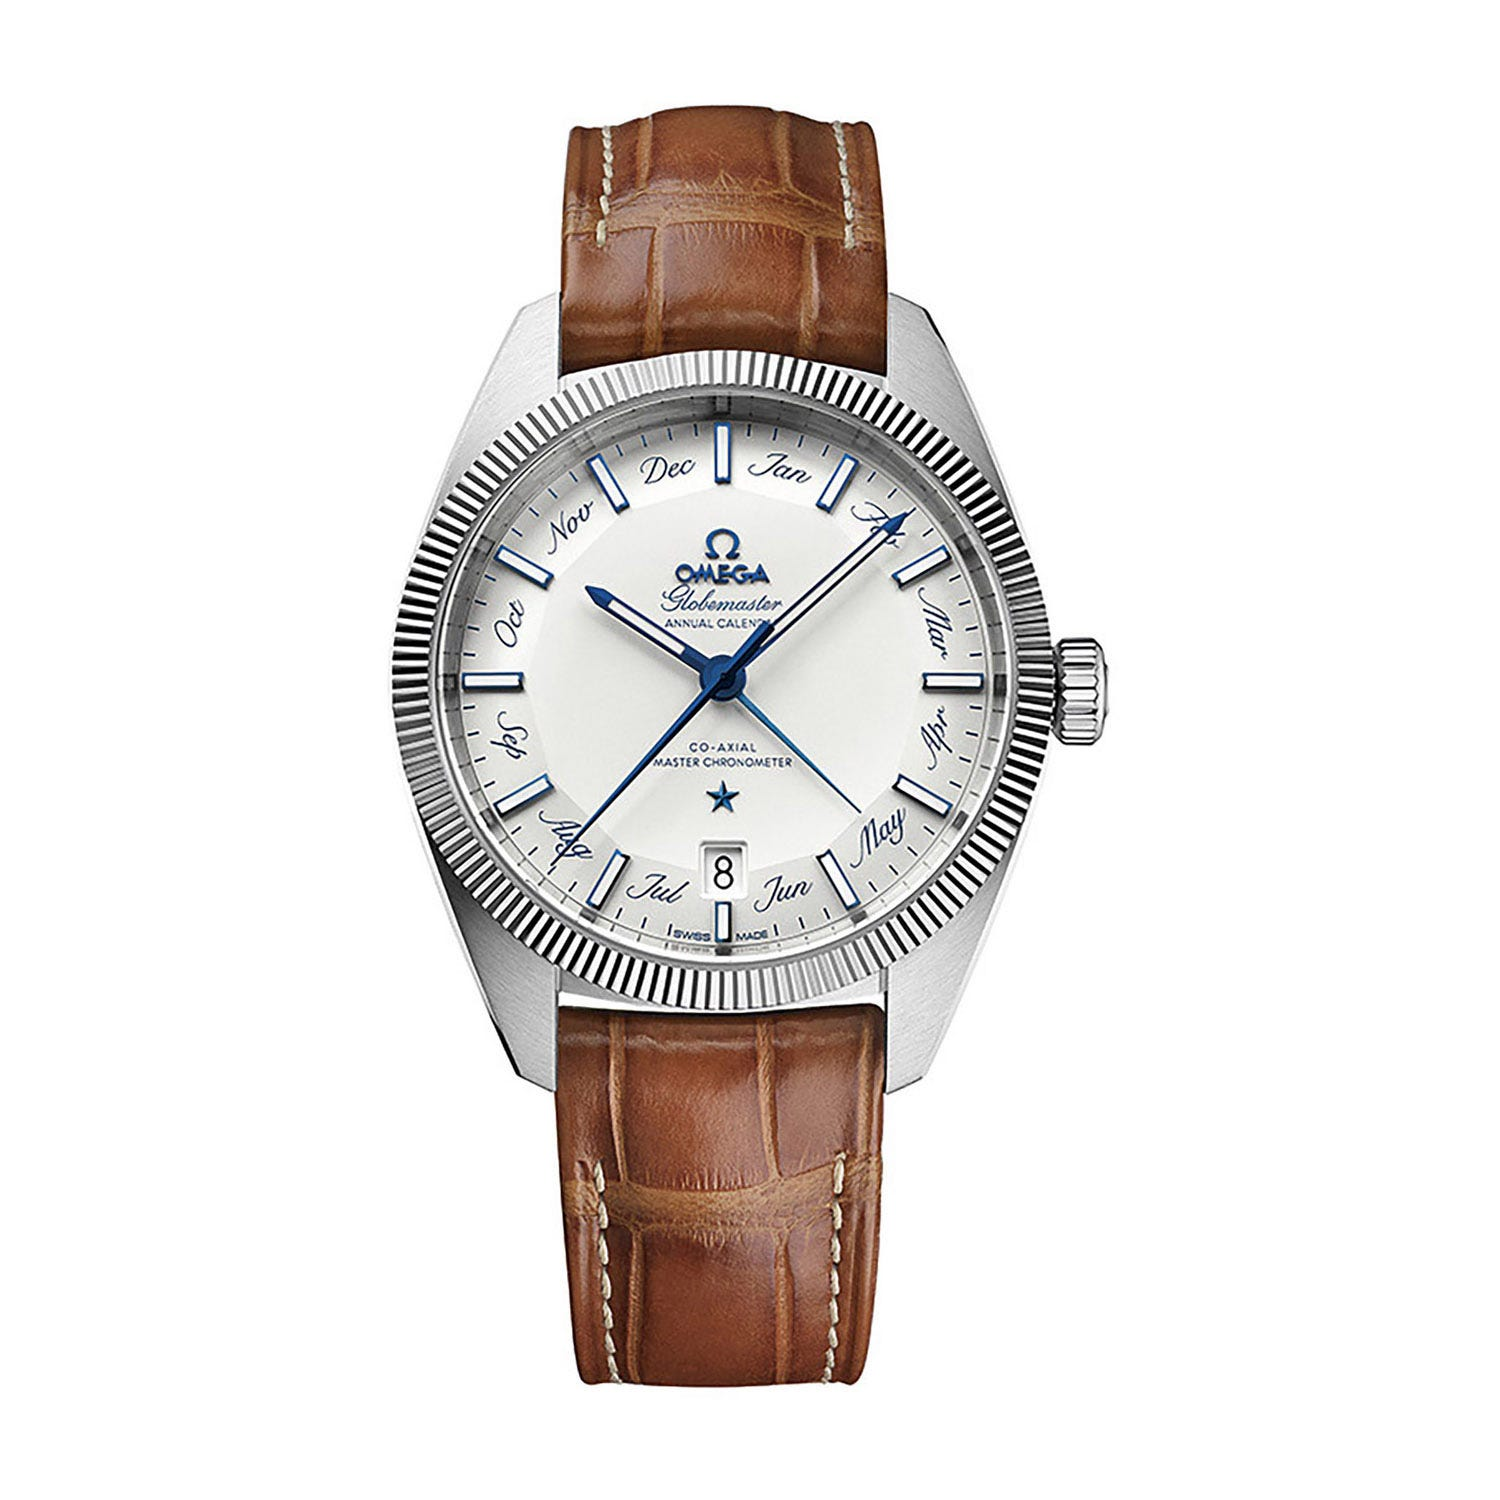 Omega Constellation Globemaster Annual Calendar Automatic silver dial men's brown leather strap watch